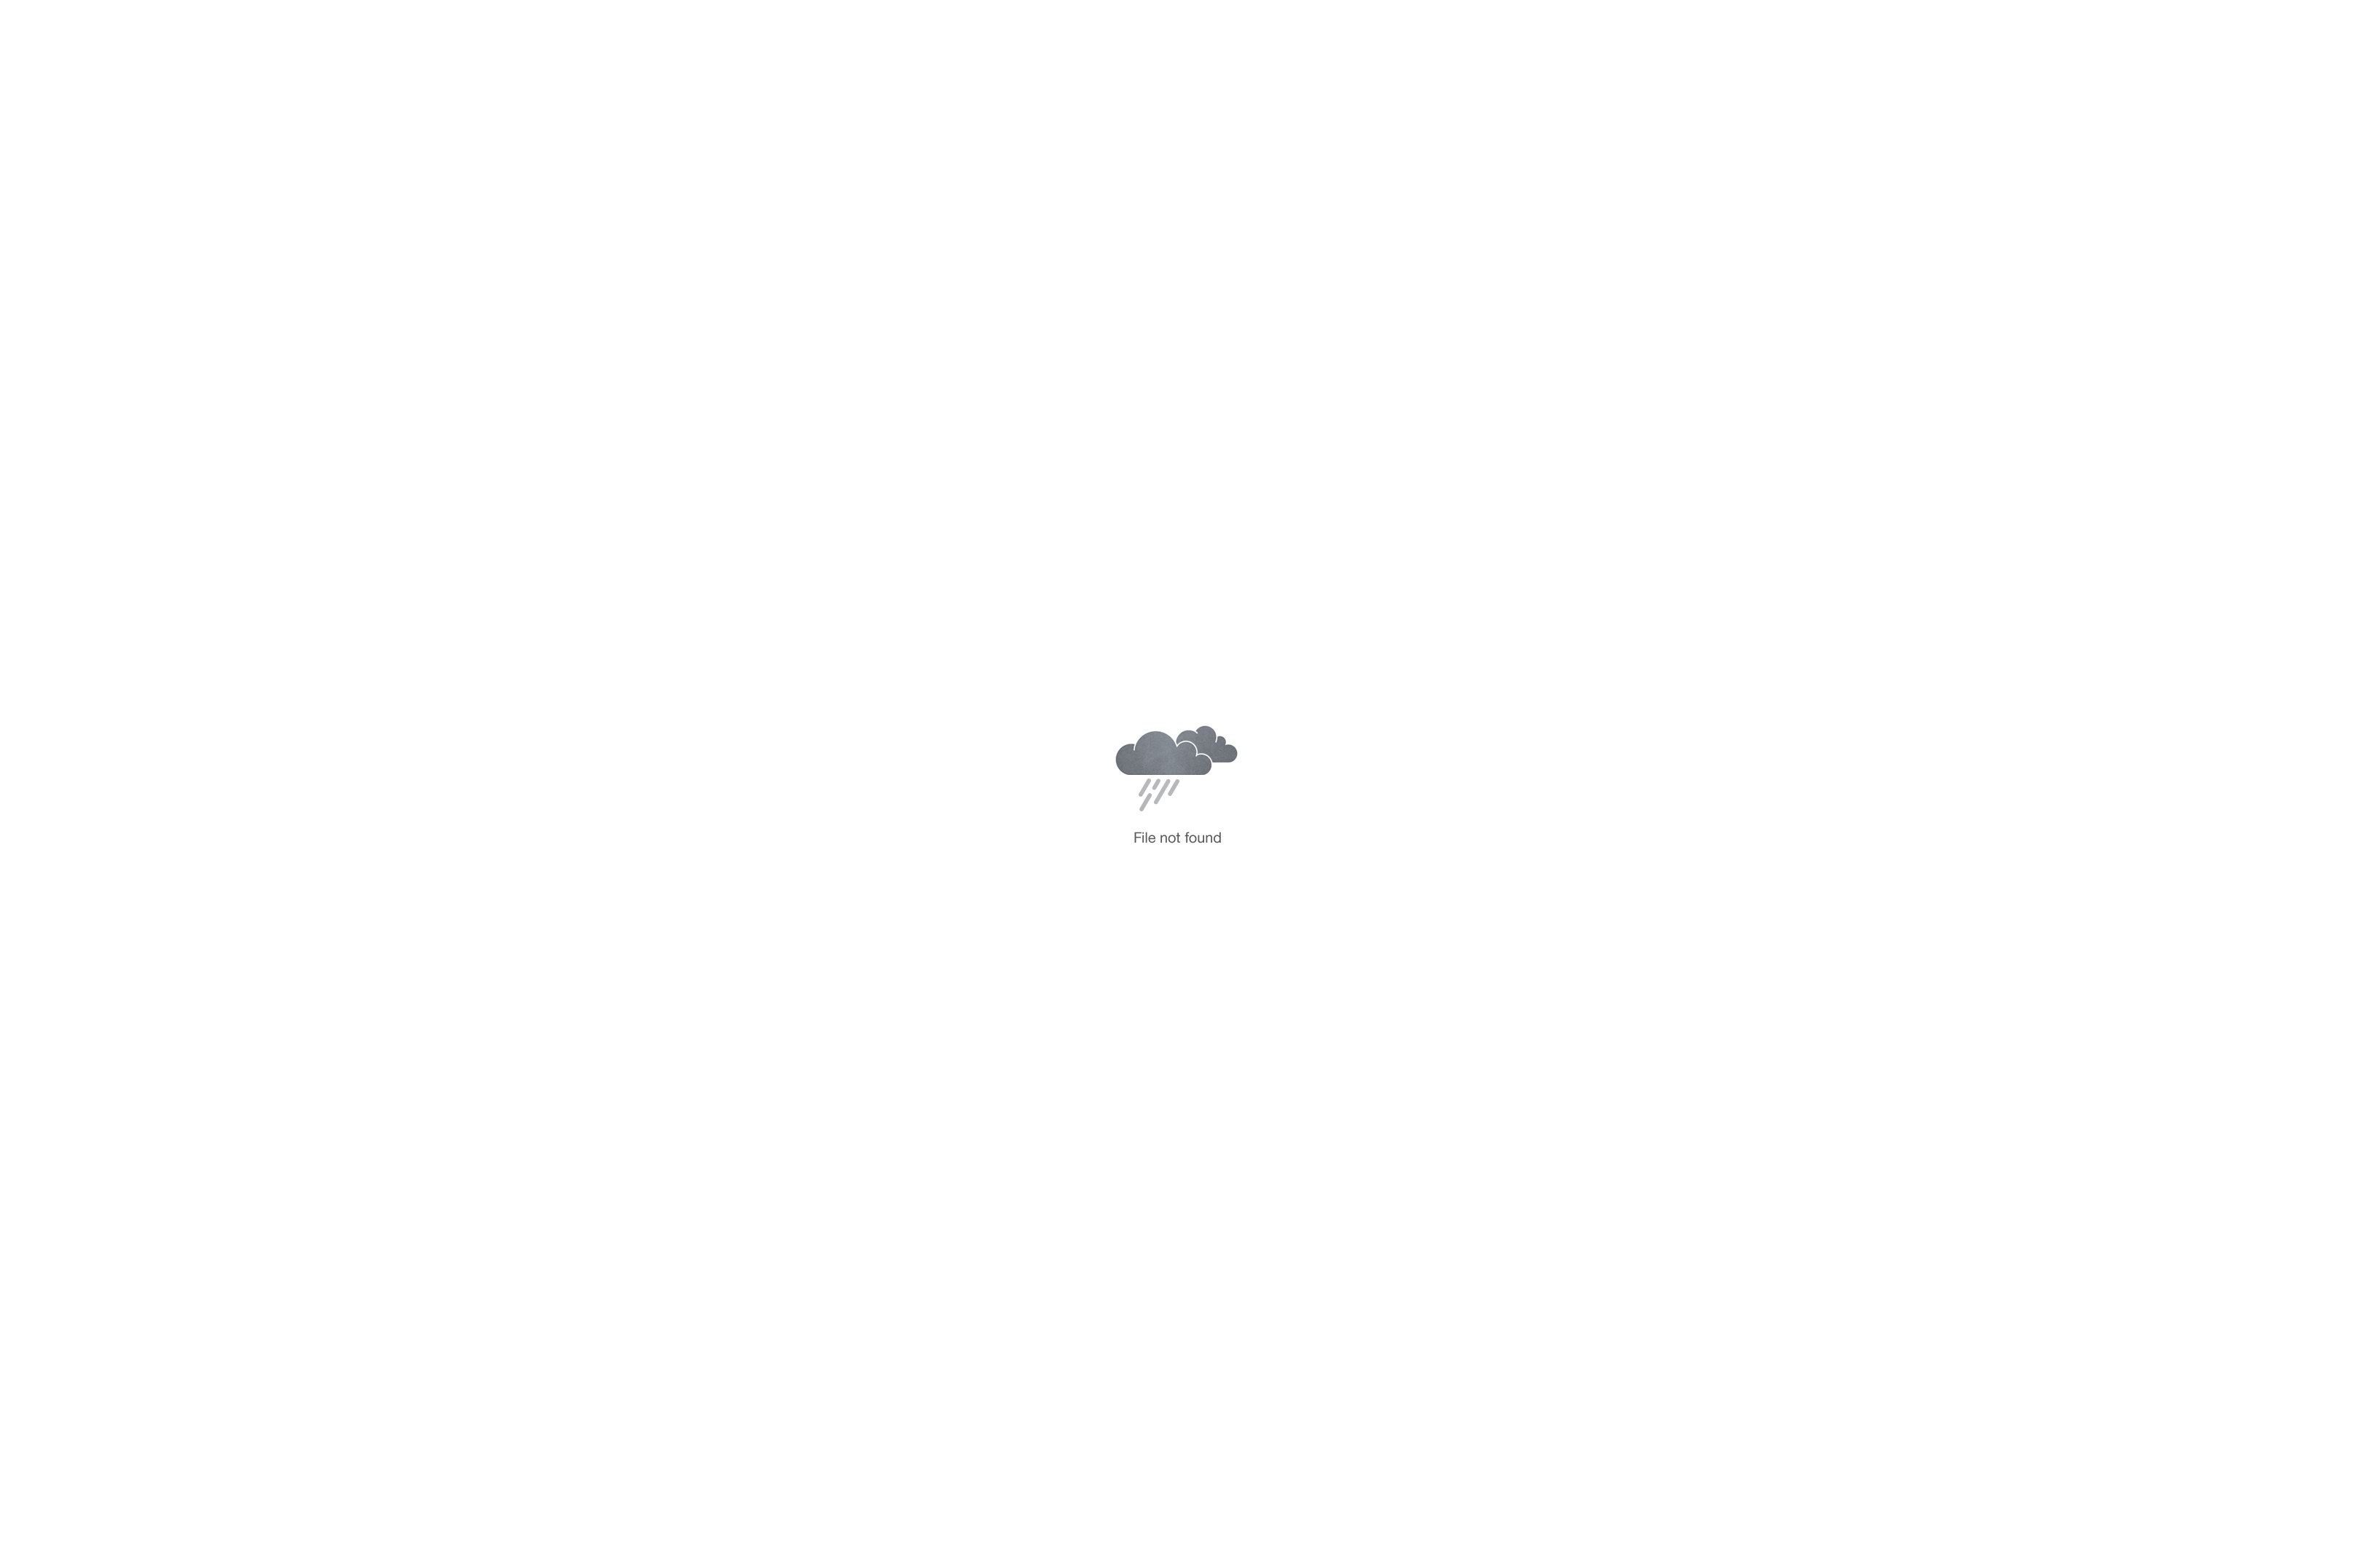 Peter-Gore-Rugby-Sponsorise-me-image-2